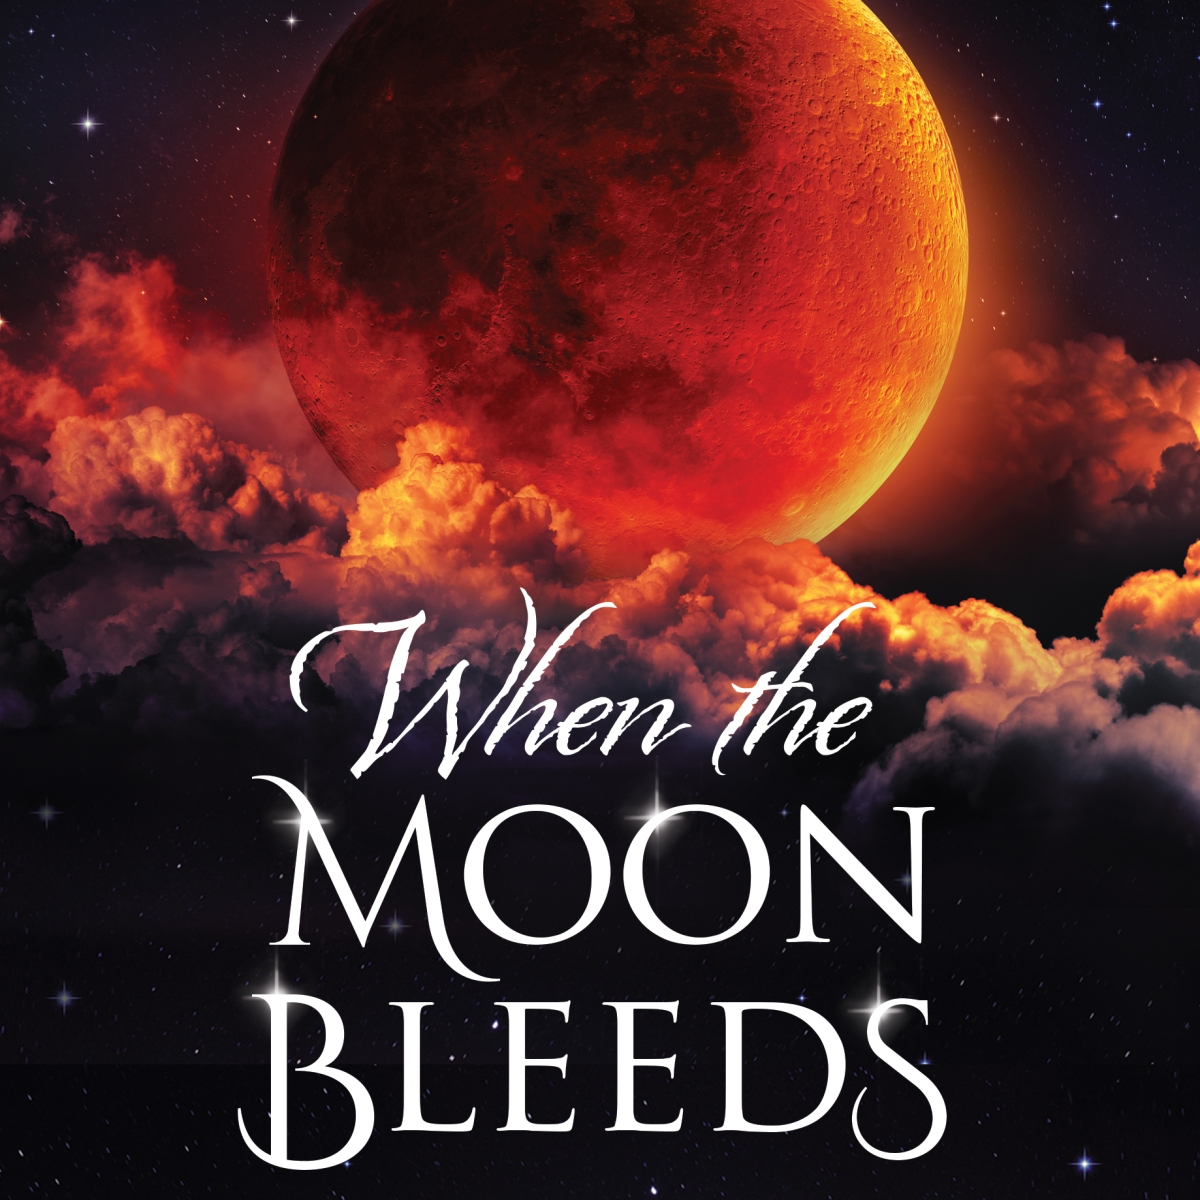 When The Moon Bleeds Book Cover featuring a full harvest moon